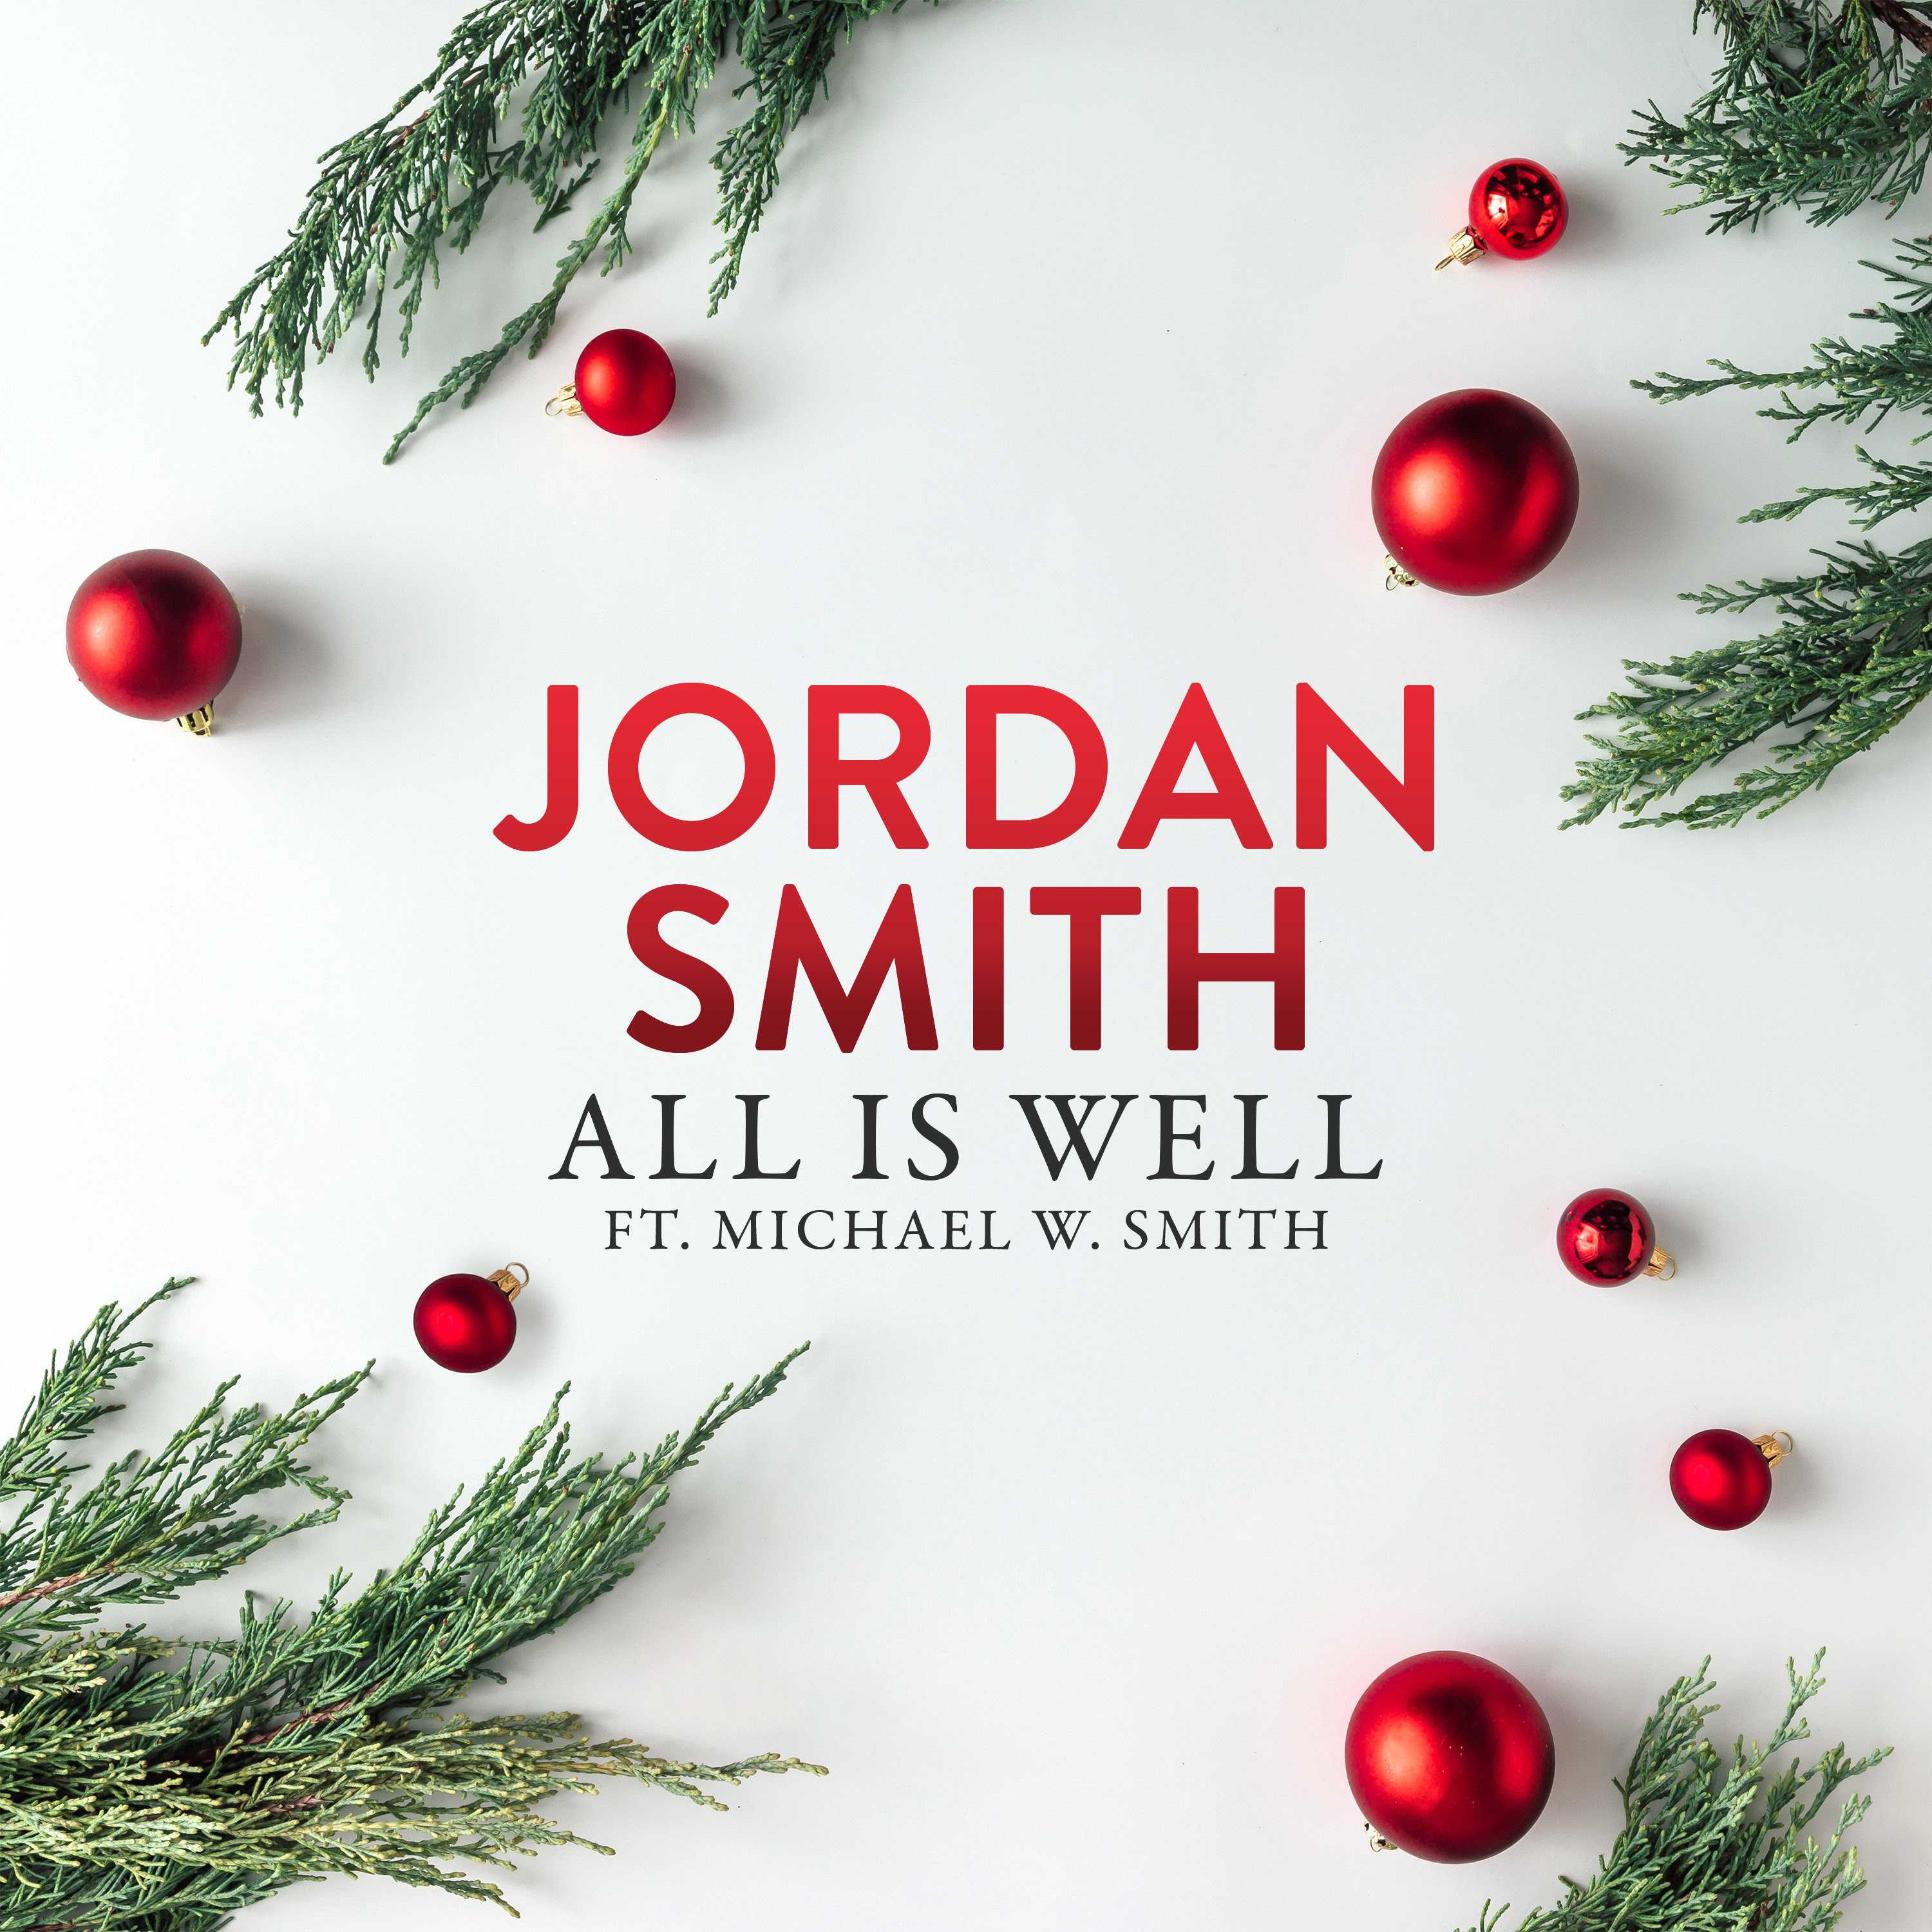 """JORDAN SMITH & MICHAEL W. SMITH RELEASE INSTANT HOLIDAY CLASSIC """"ALL IS WELL"""" [AUDIO]"""